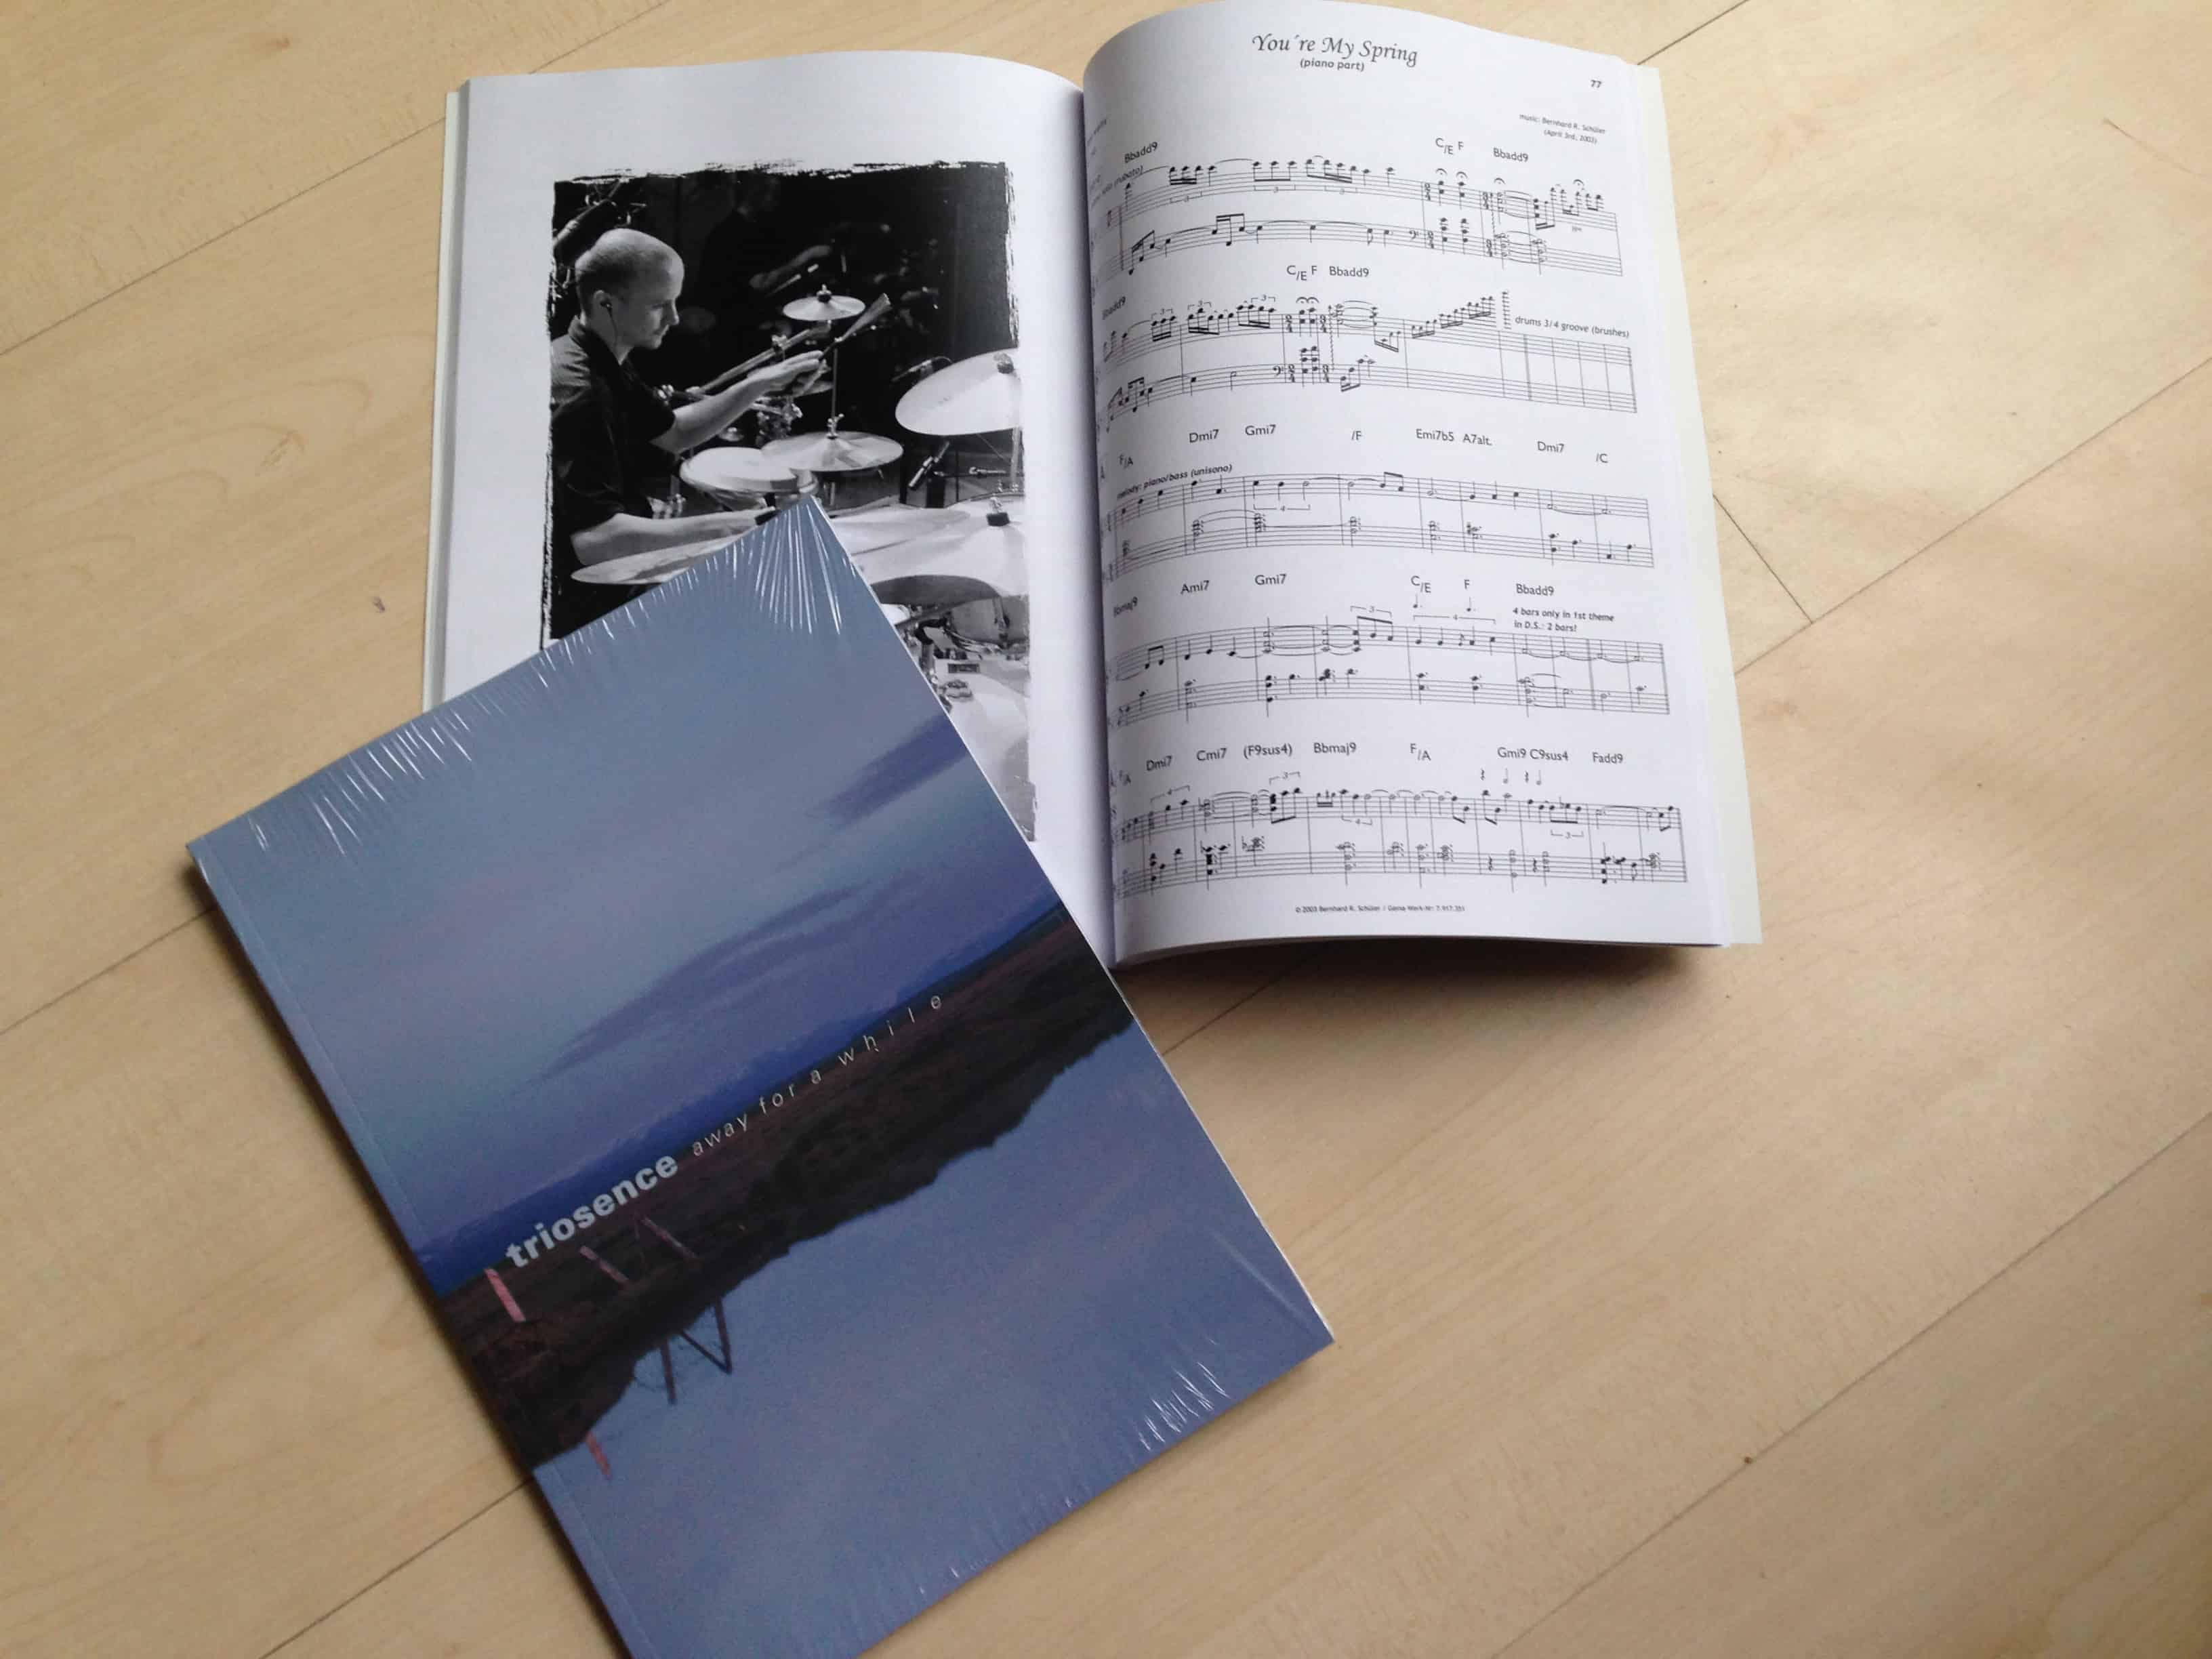 Away For A While Songbook now available